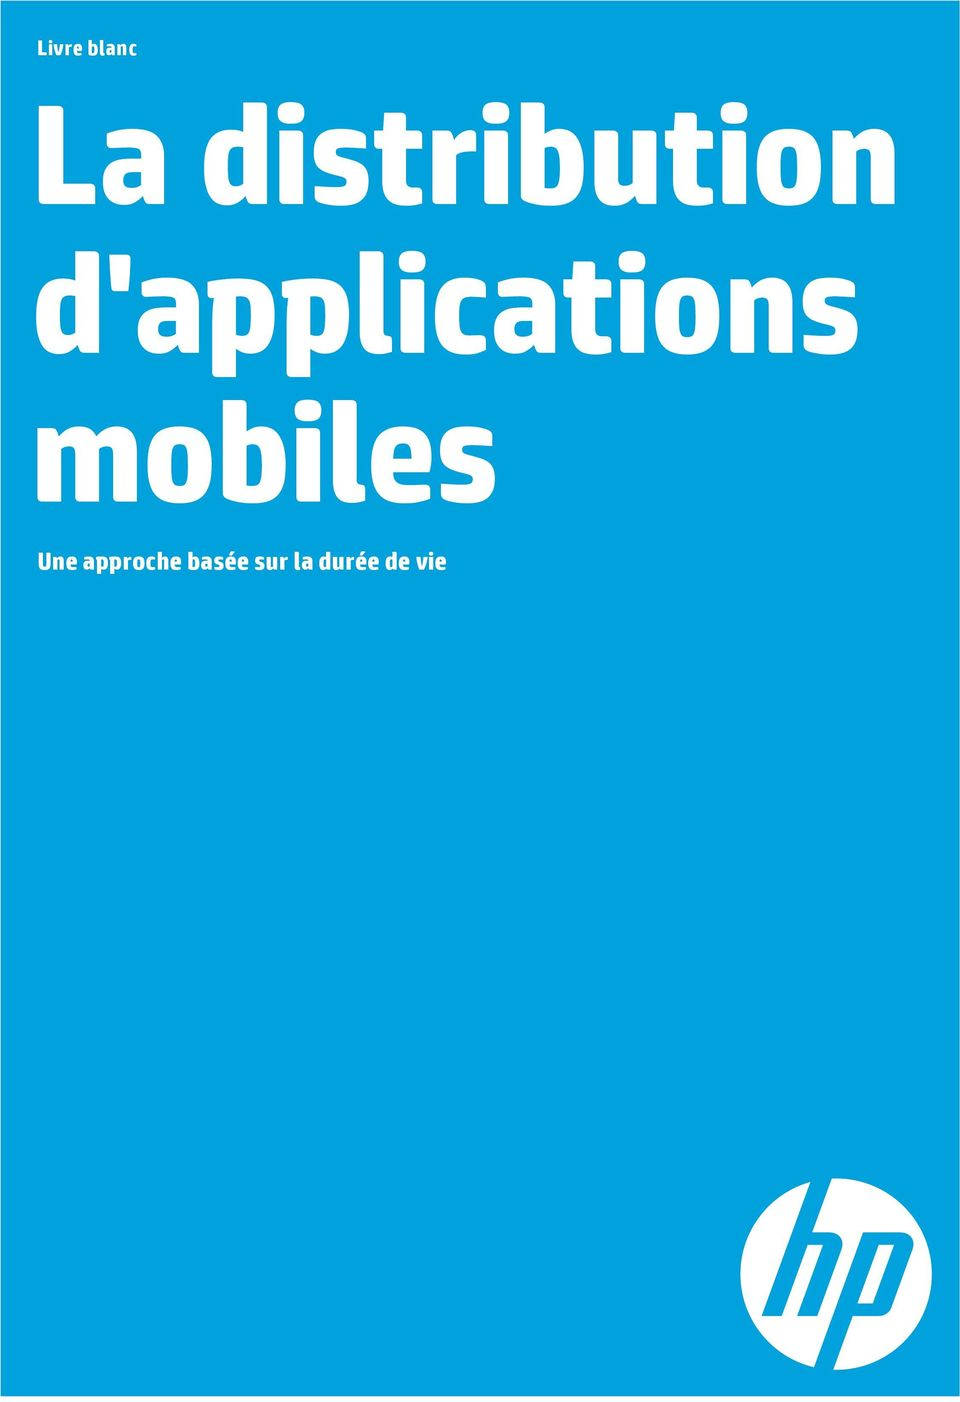 d'applications mobiles